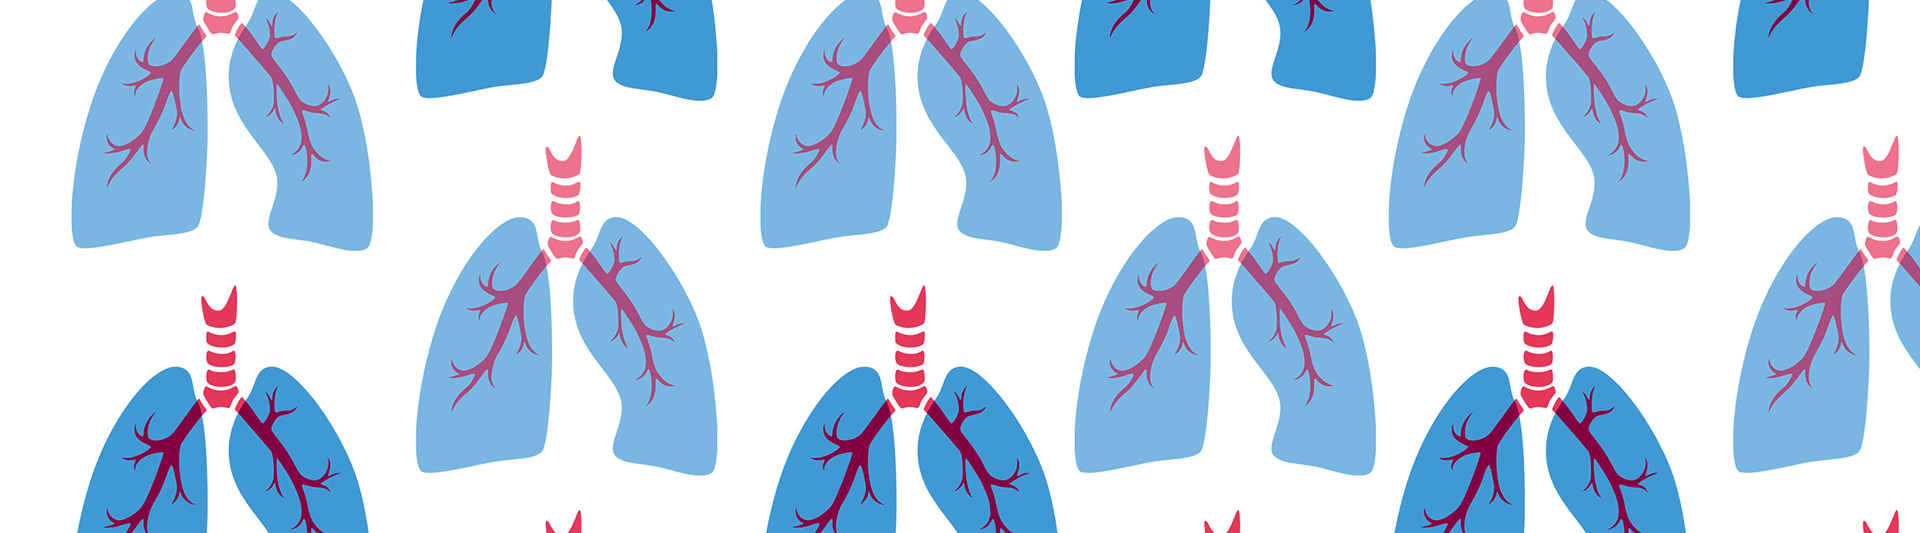 Beyond Medical Therapeutic Approaches to End-Stage PH & Lung Disease, Webinar Recording